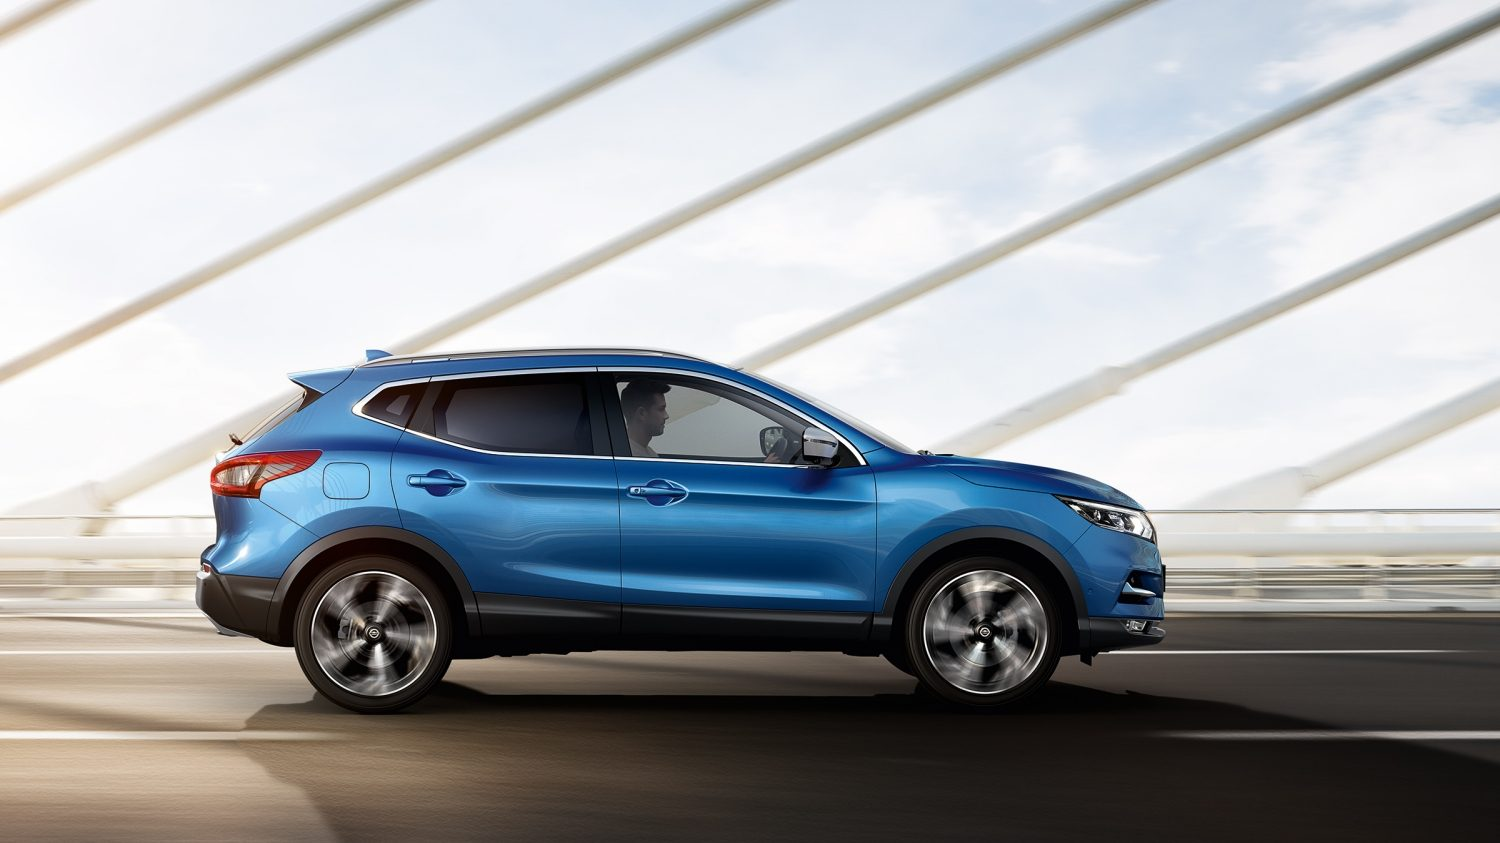 New Nissan Qashqai driving performance